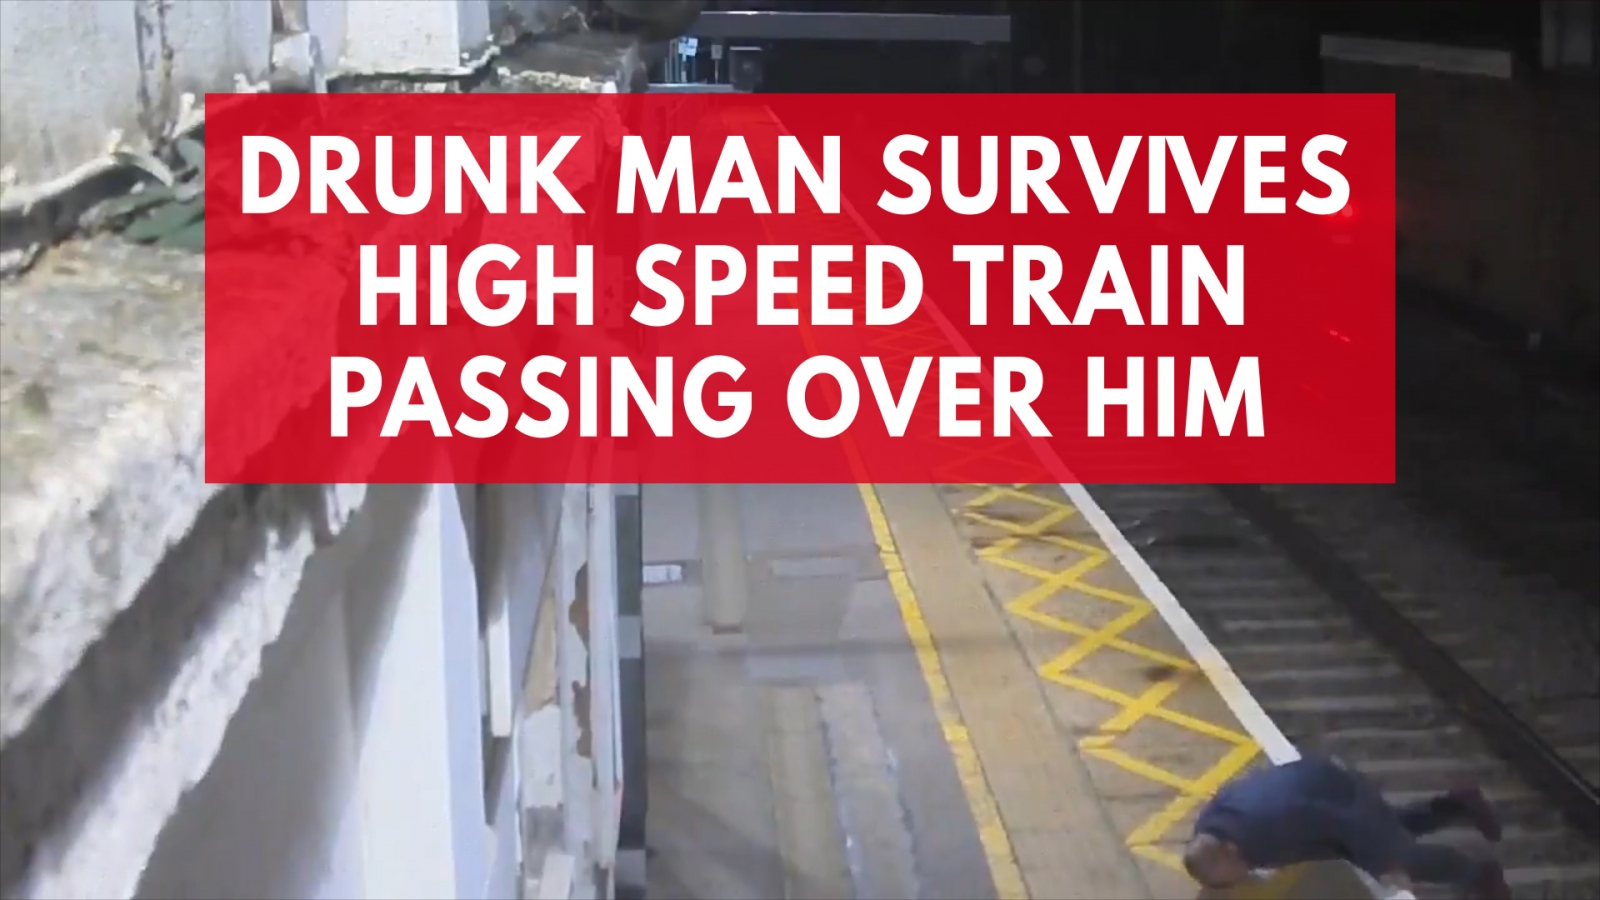 watch-this-drunk-man-narrowly-escaped-death-as-train-speeds-past-over-his-body